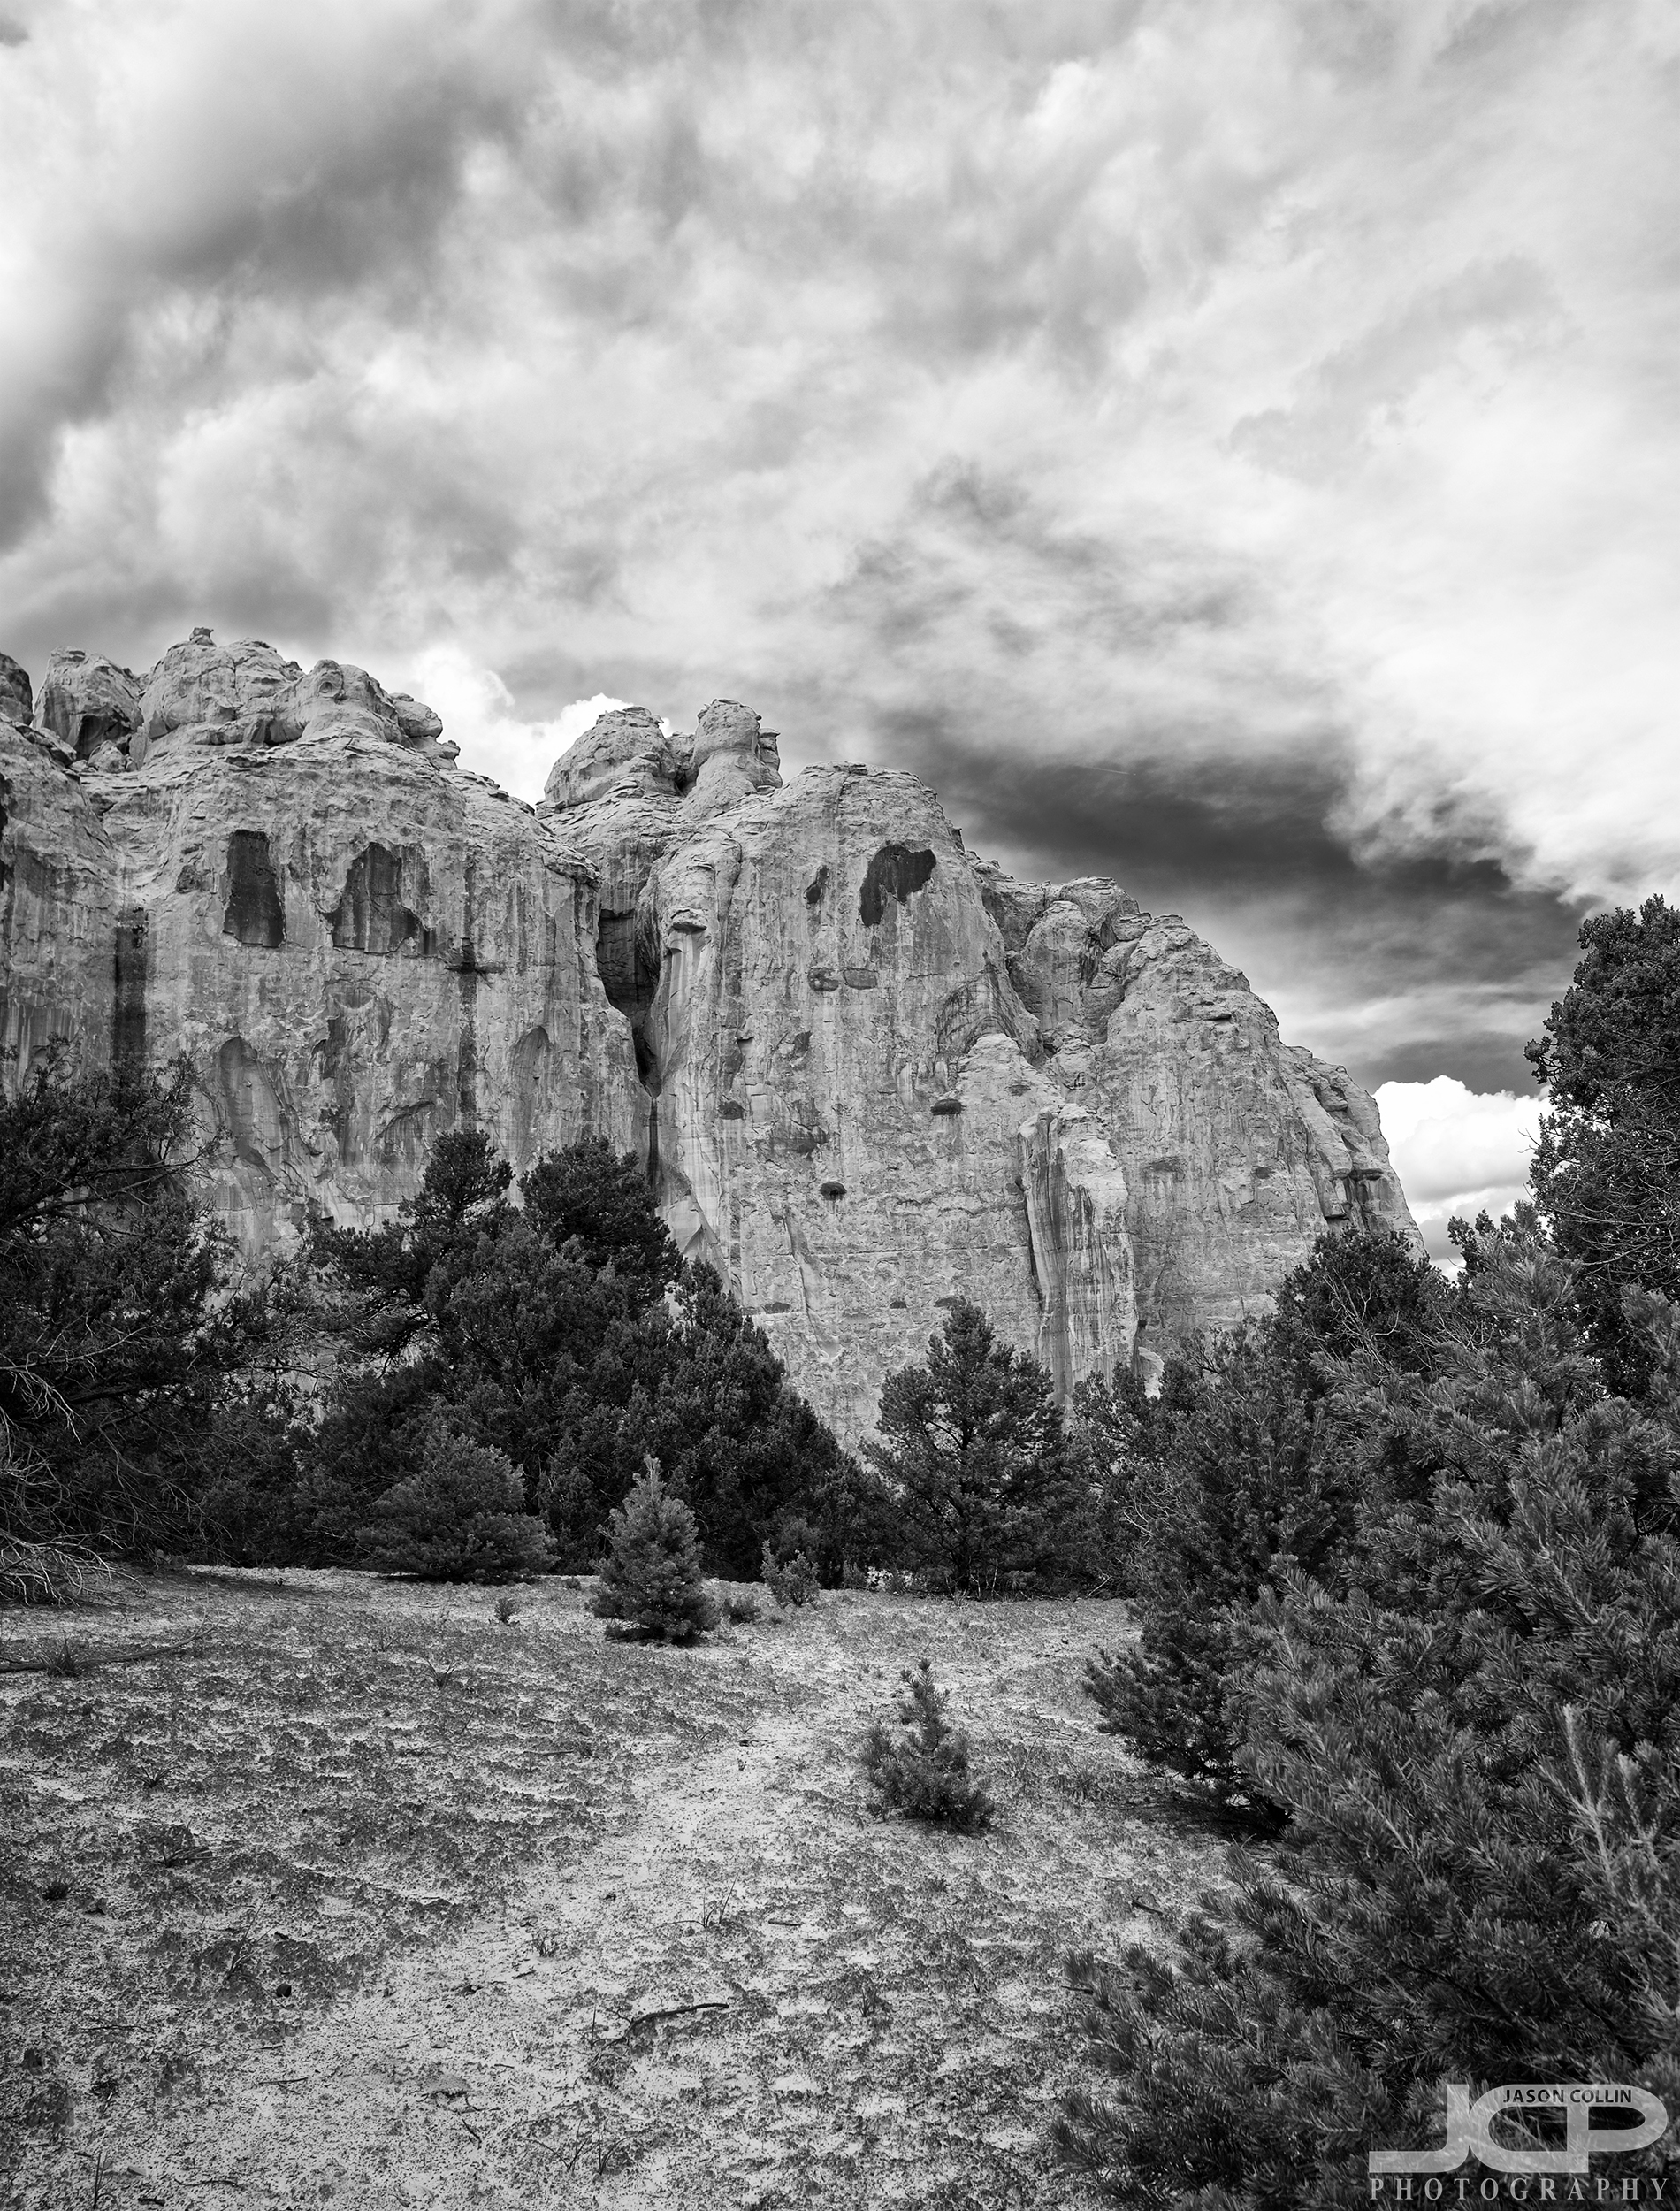 The approach to El Morro National Monument in New Mexico